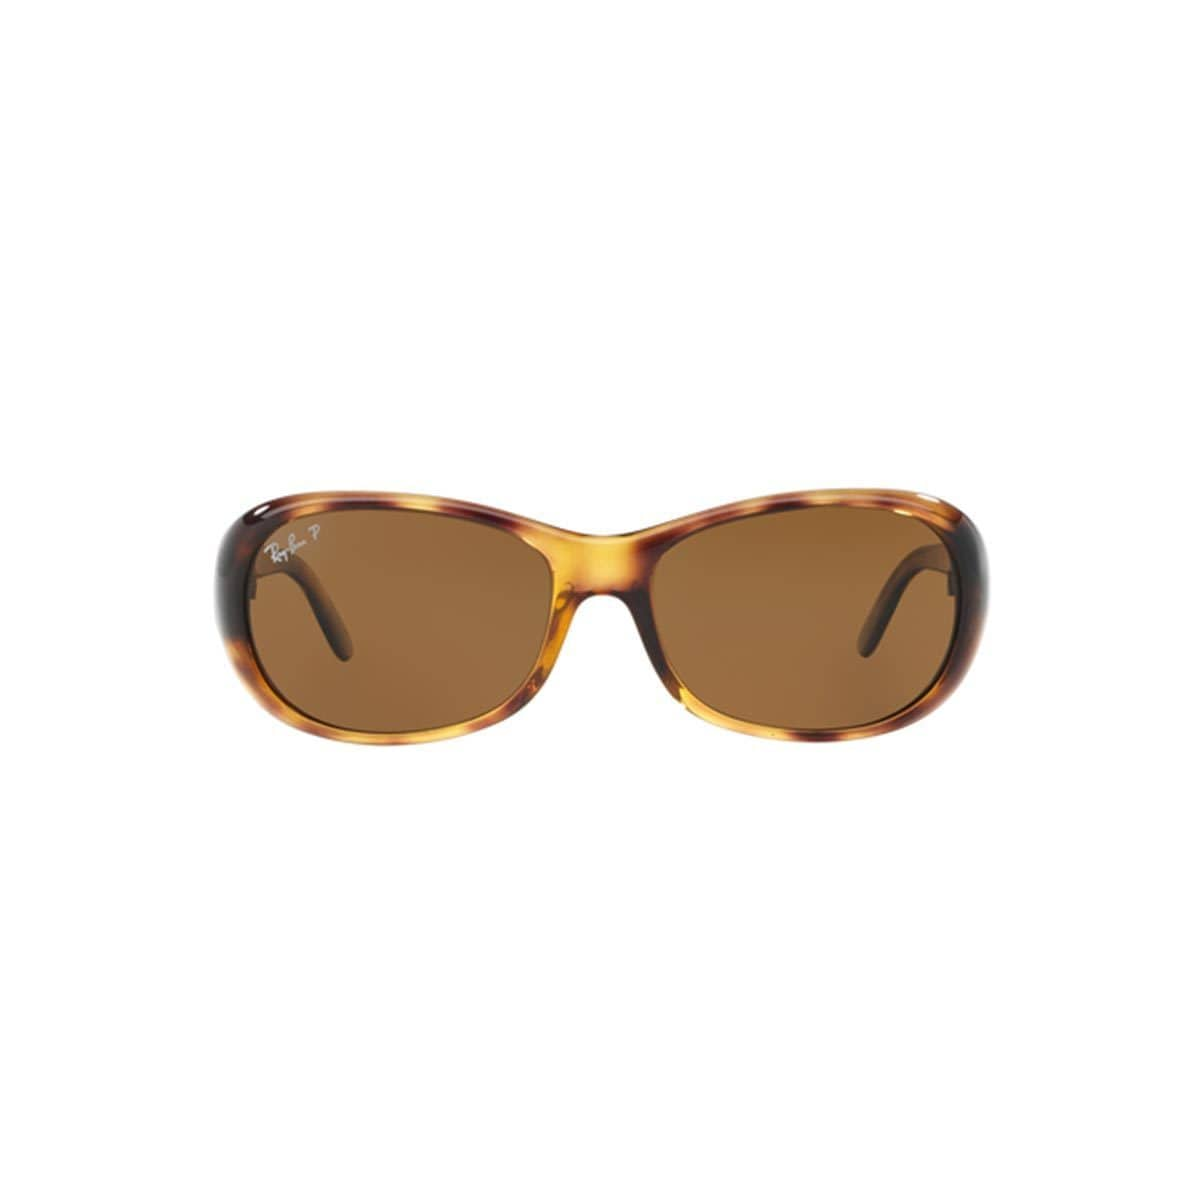 6b3bffacfe Shop Ray-Ban Women s RB4061 642 57 Tortoise Plastic Oval Polarized  Sunglasses (As Is Item) - Free Shipping Today - Overstock - 12883893